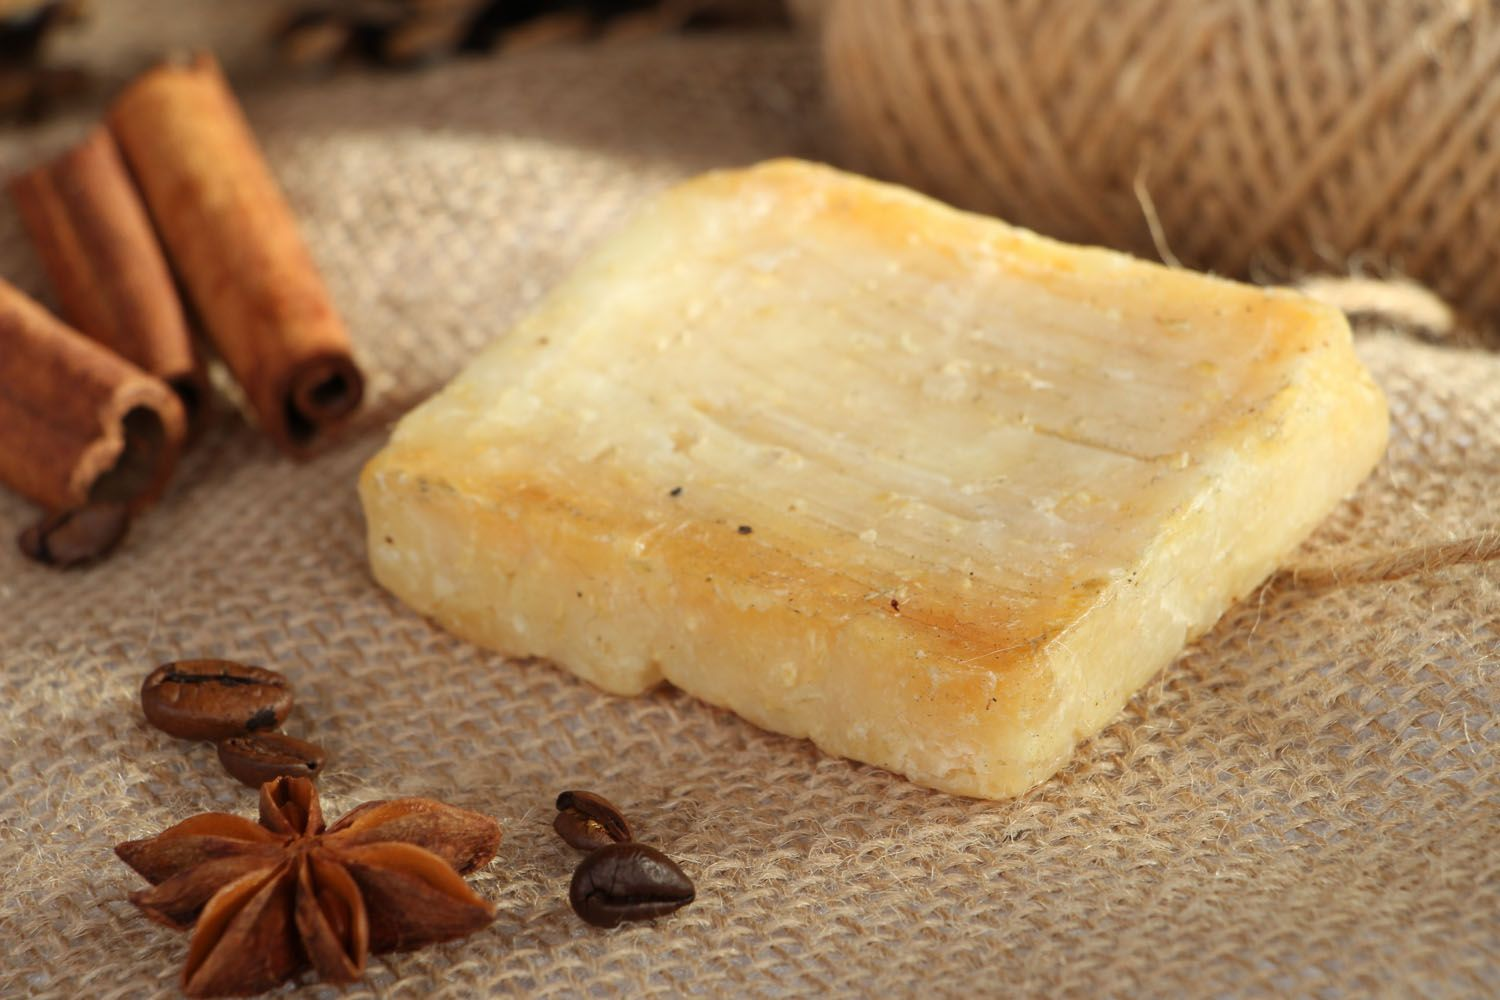 Scrub soap with coconut and rum photo 5